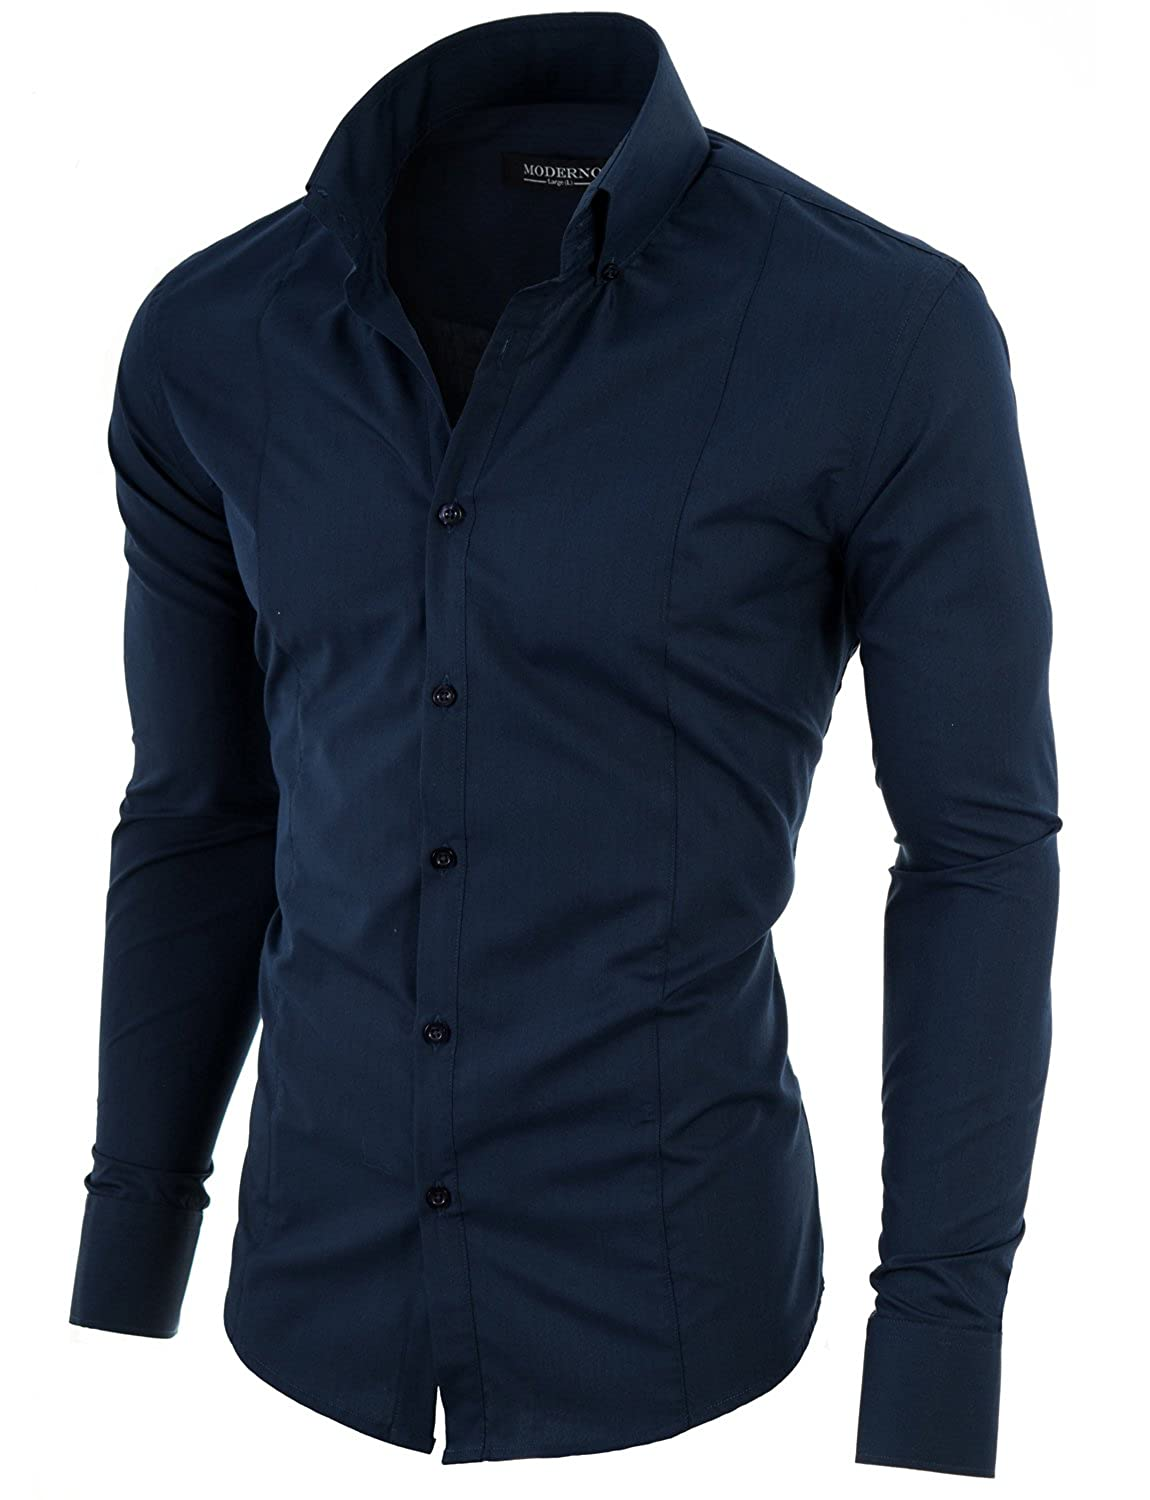 Moderno Slim Fit Dress Shirts For Men Long Sleeve Button Down Collar